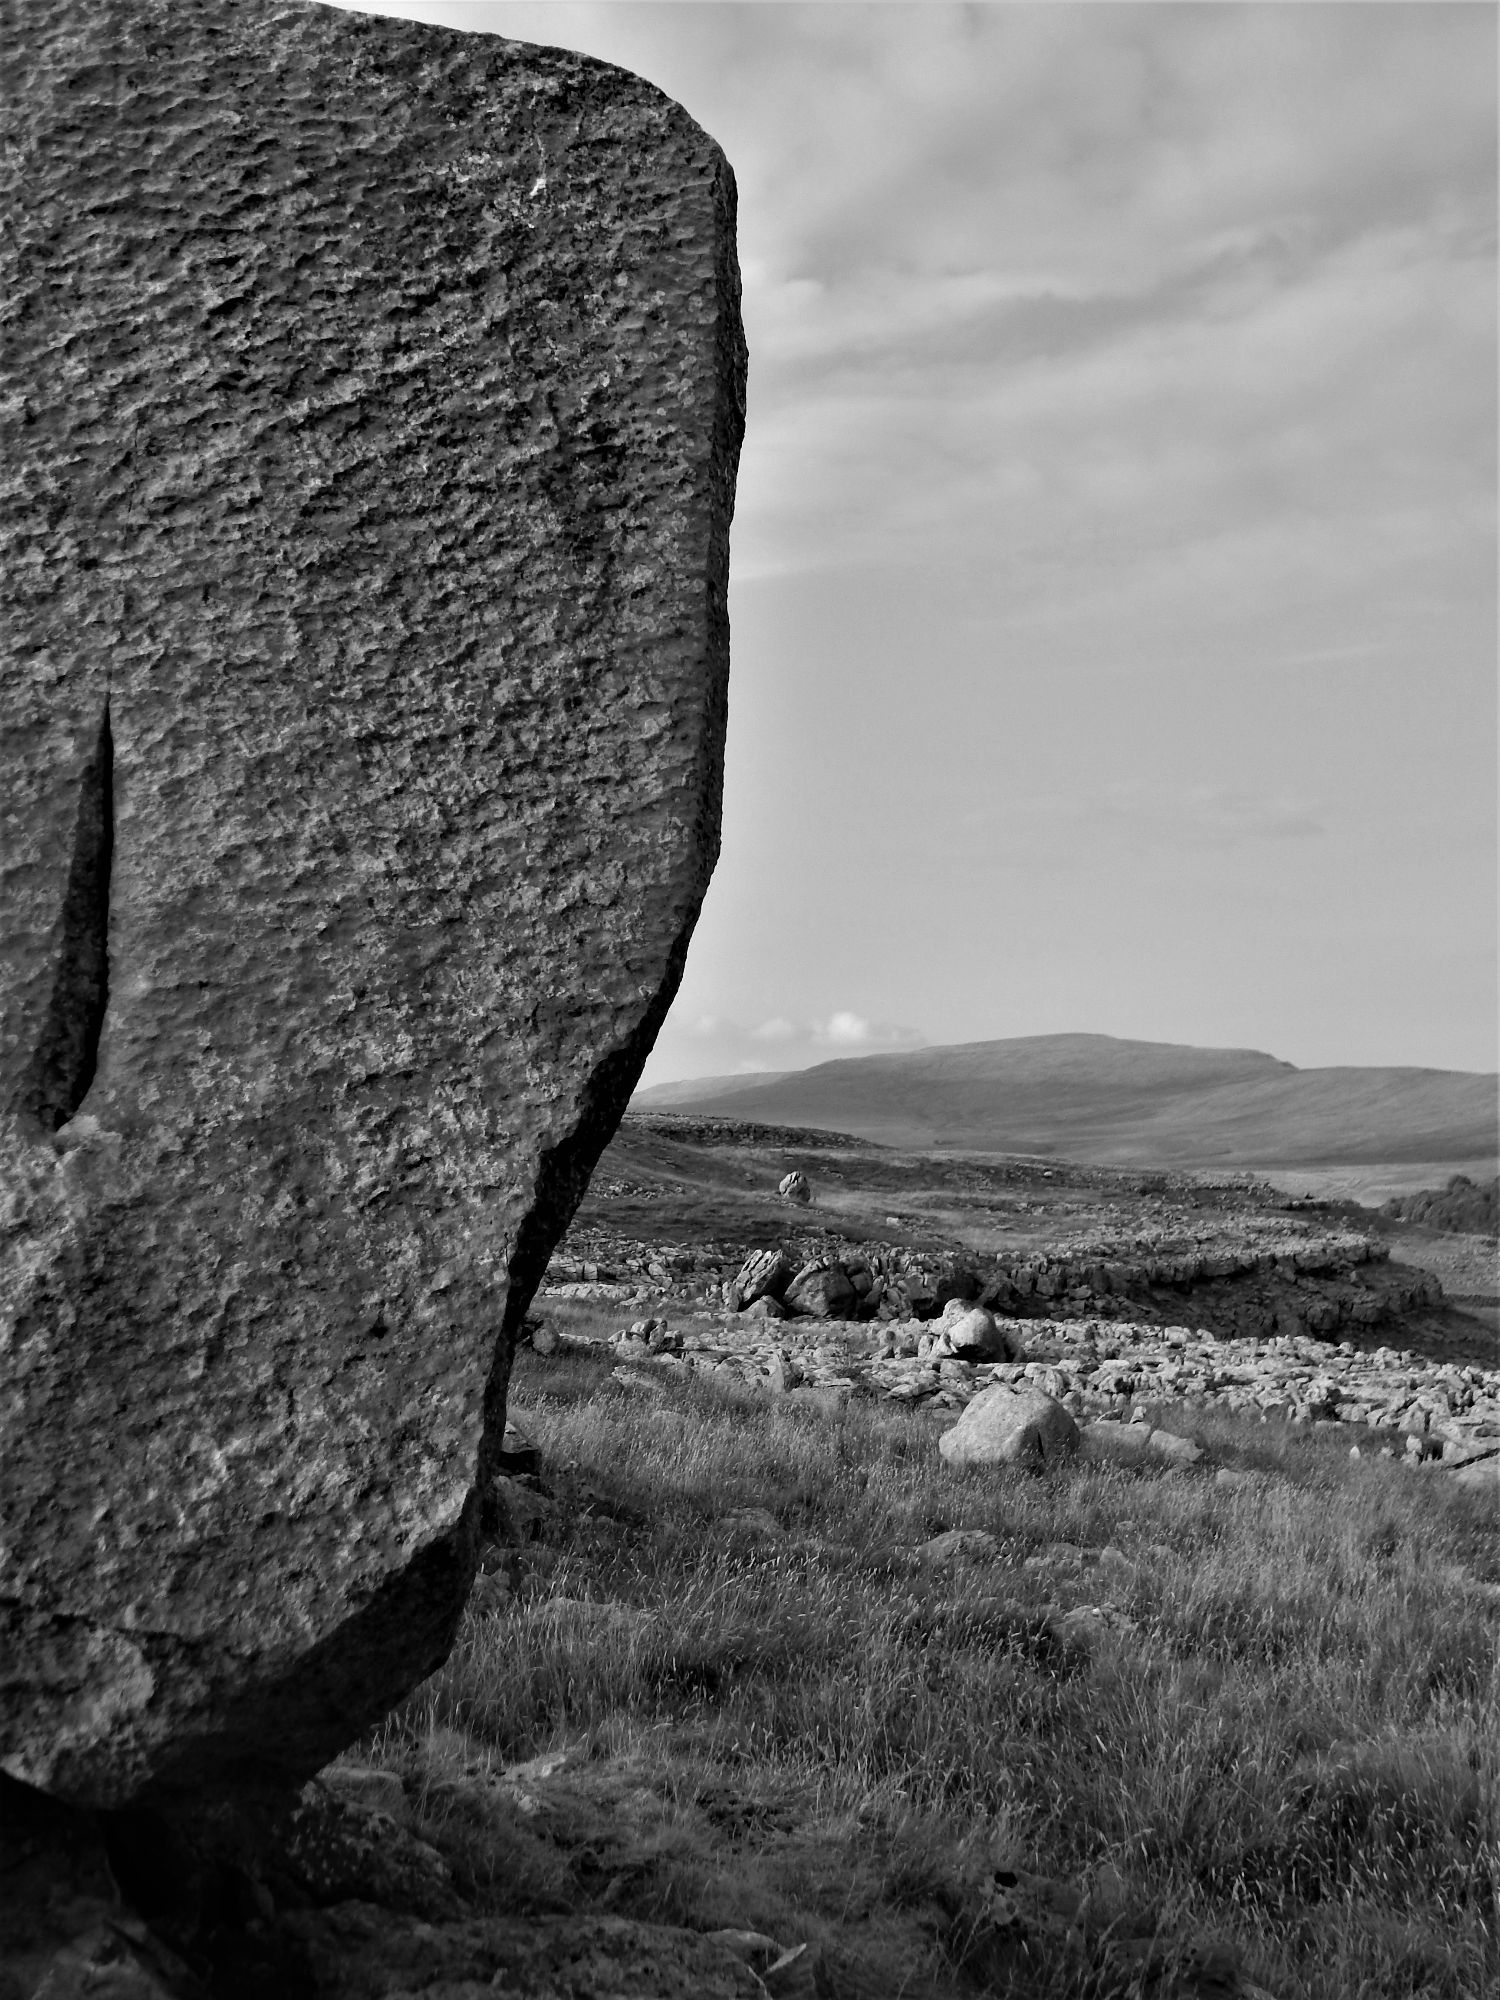 Cheese Press Stones towards Whernside